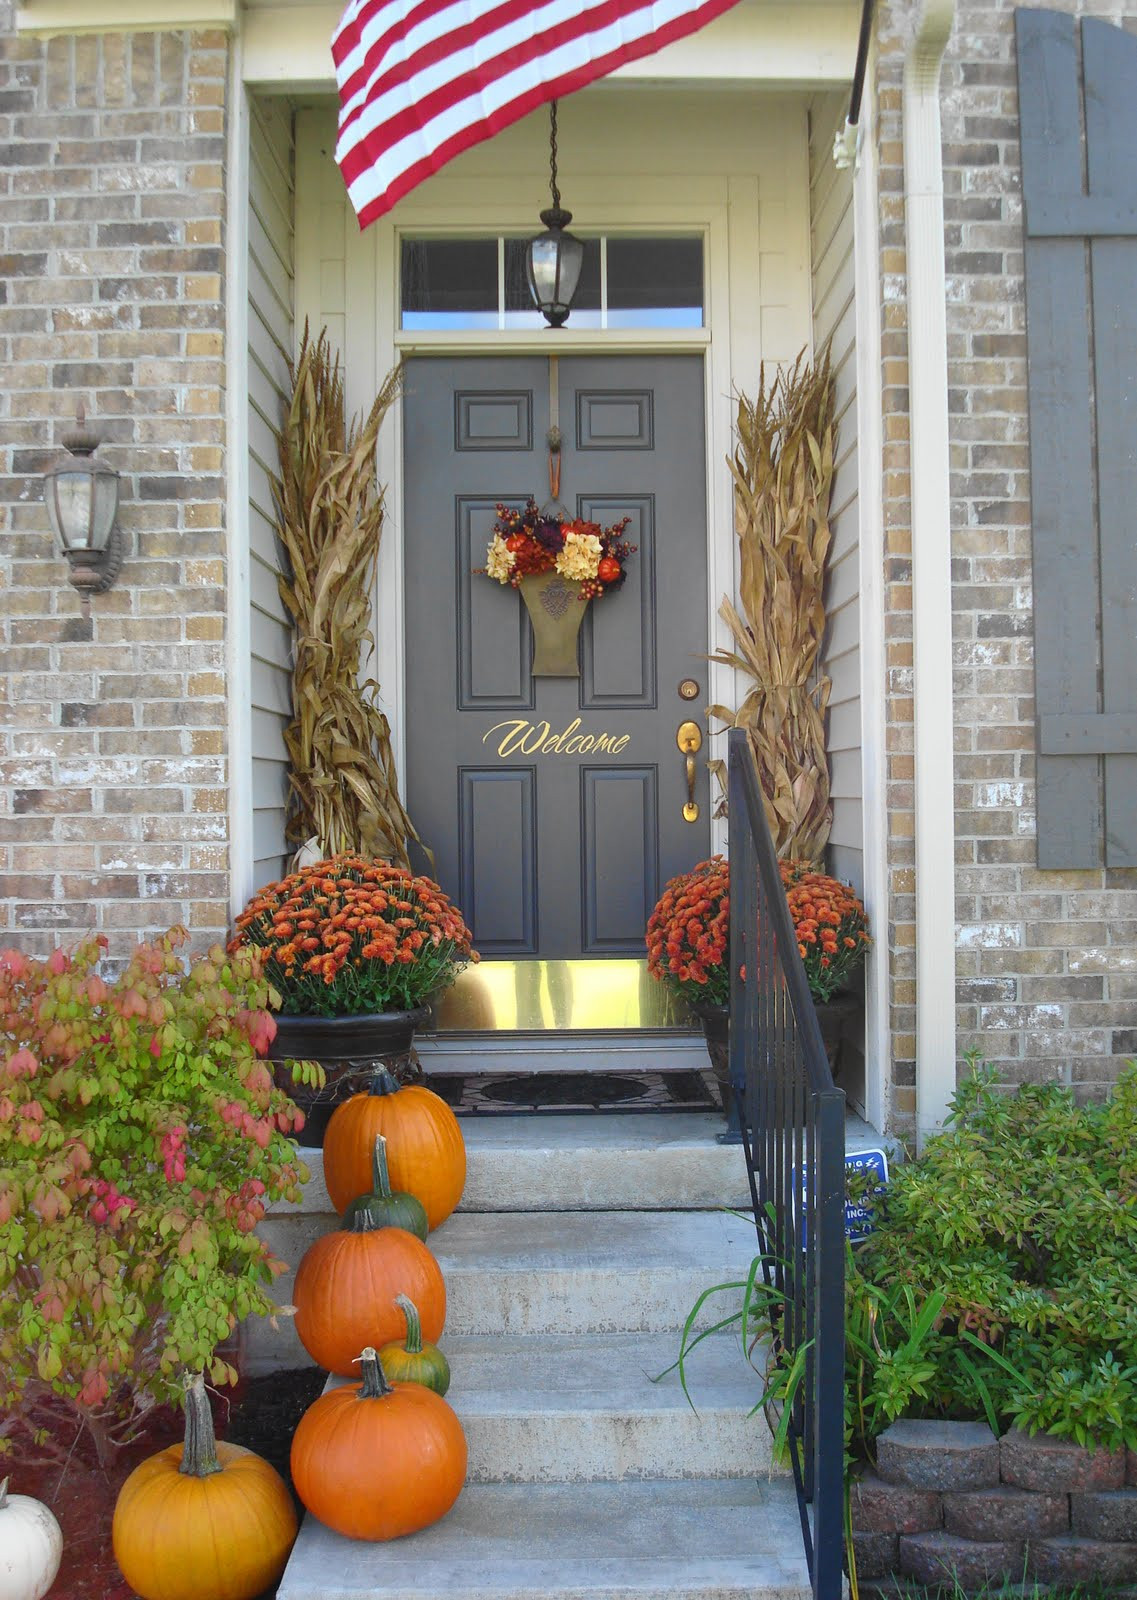 Fall Decorations For Front Porch  22 Fall Front Porch Ideas veranda